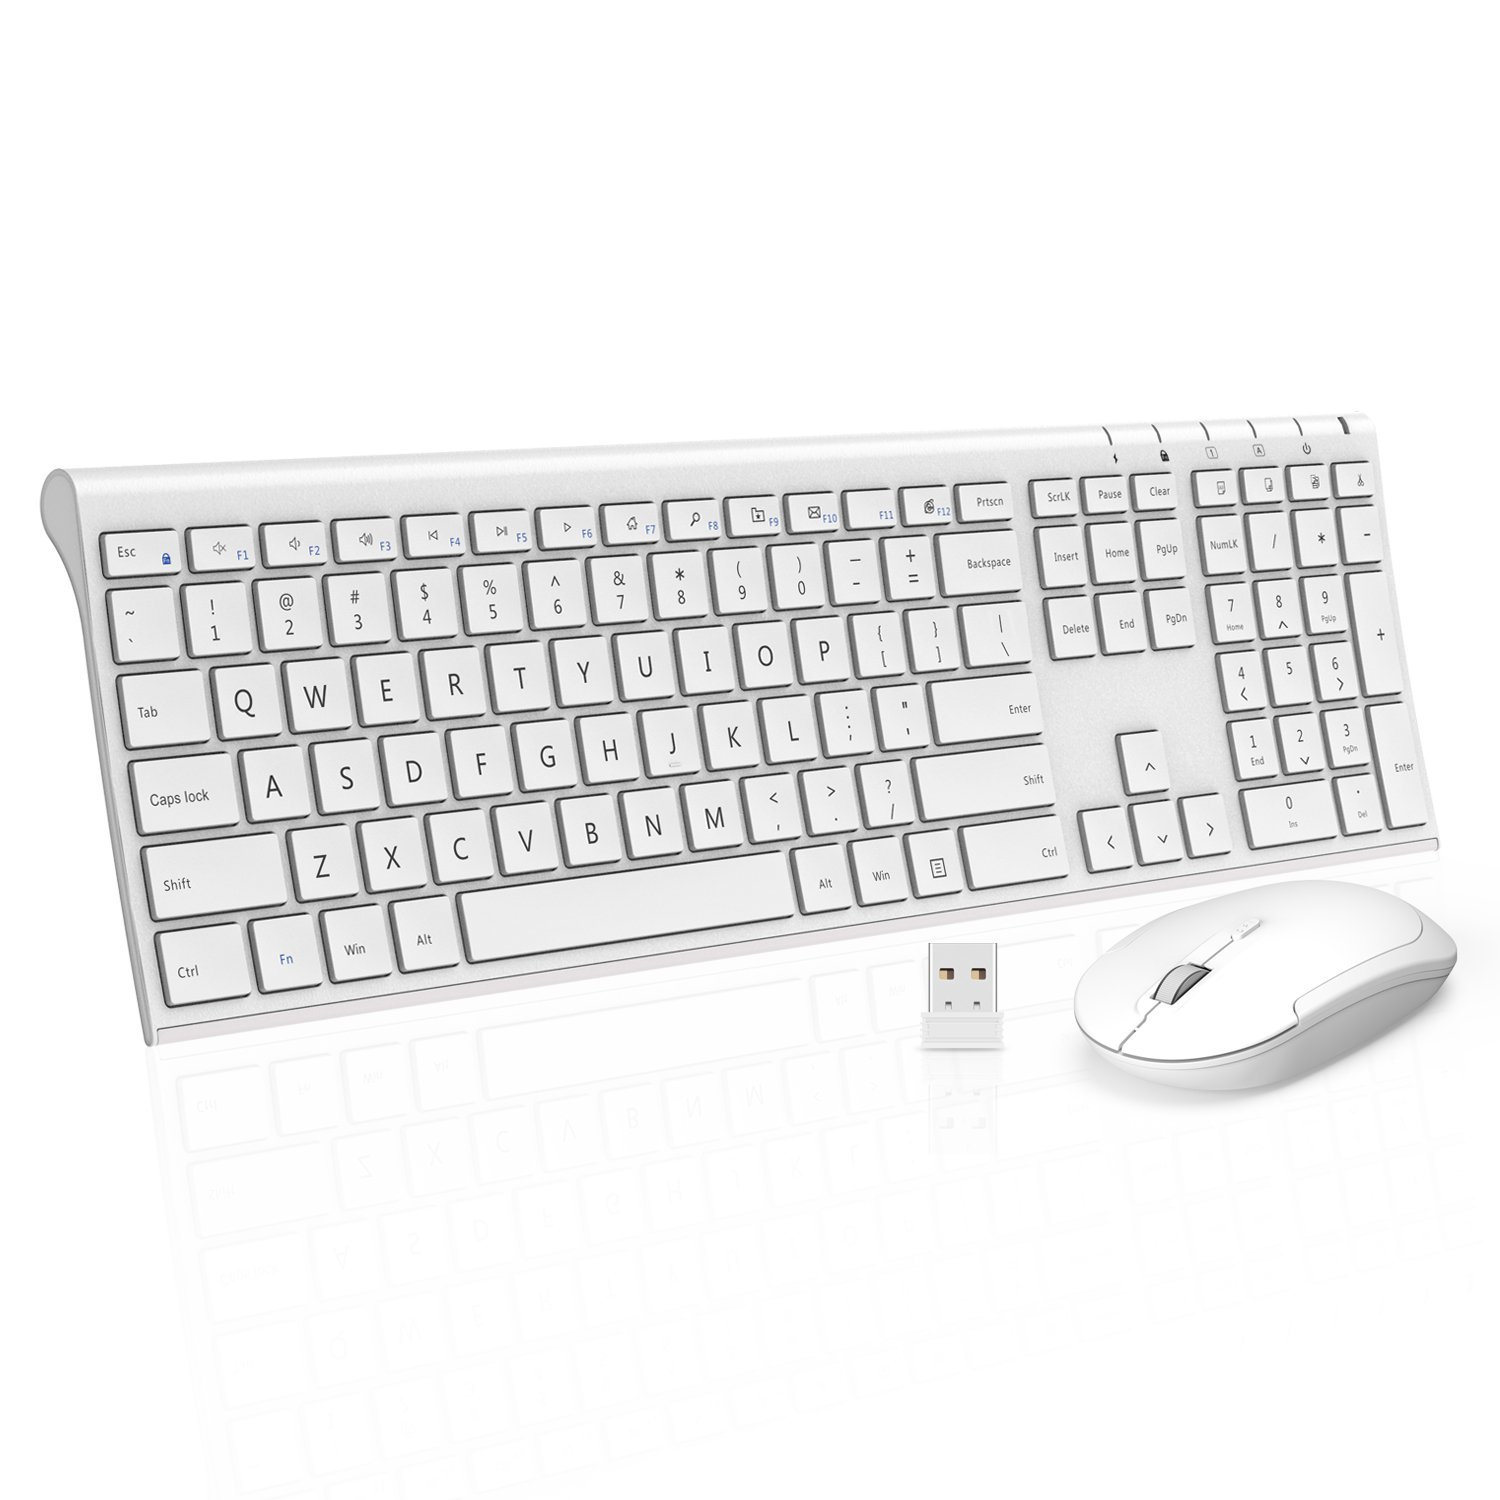 Wireless Keyboard Mouse, Jelly Comb KUS015 2.4GHz Ultra Slim Full Size Rechargeable Wireless Keyboard and Mouse Combo for Windows, Laptop, Notebook, PC, Desktop, Computer (White)